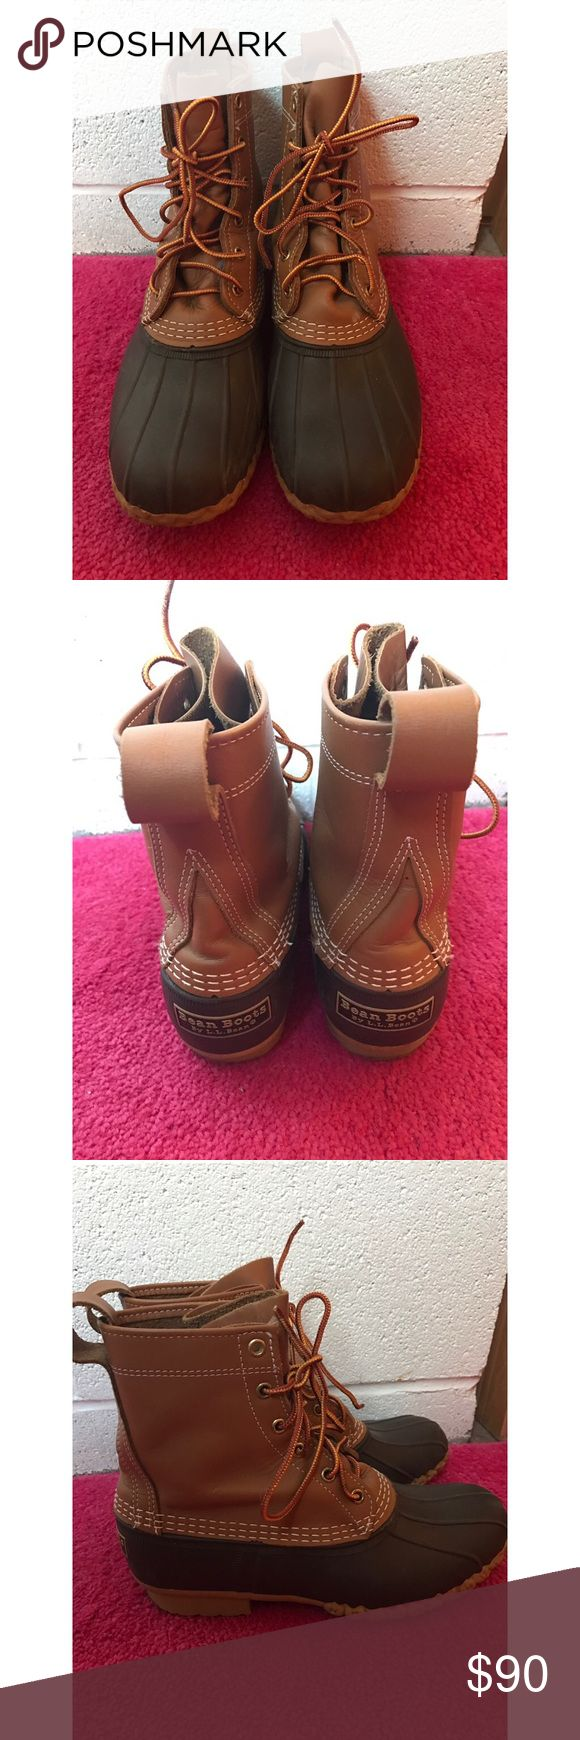 EUC Women's LL Bean Boots Worn only about 5 times because they are too big for me. Excellent user condition. No stains or tears. L.L. Bean Shoes Winter & Rain Boots